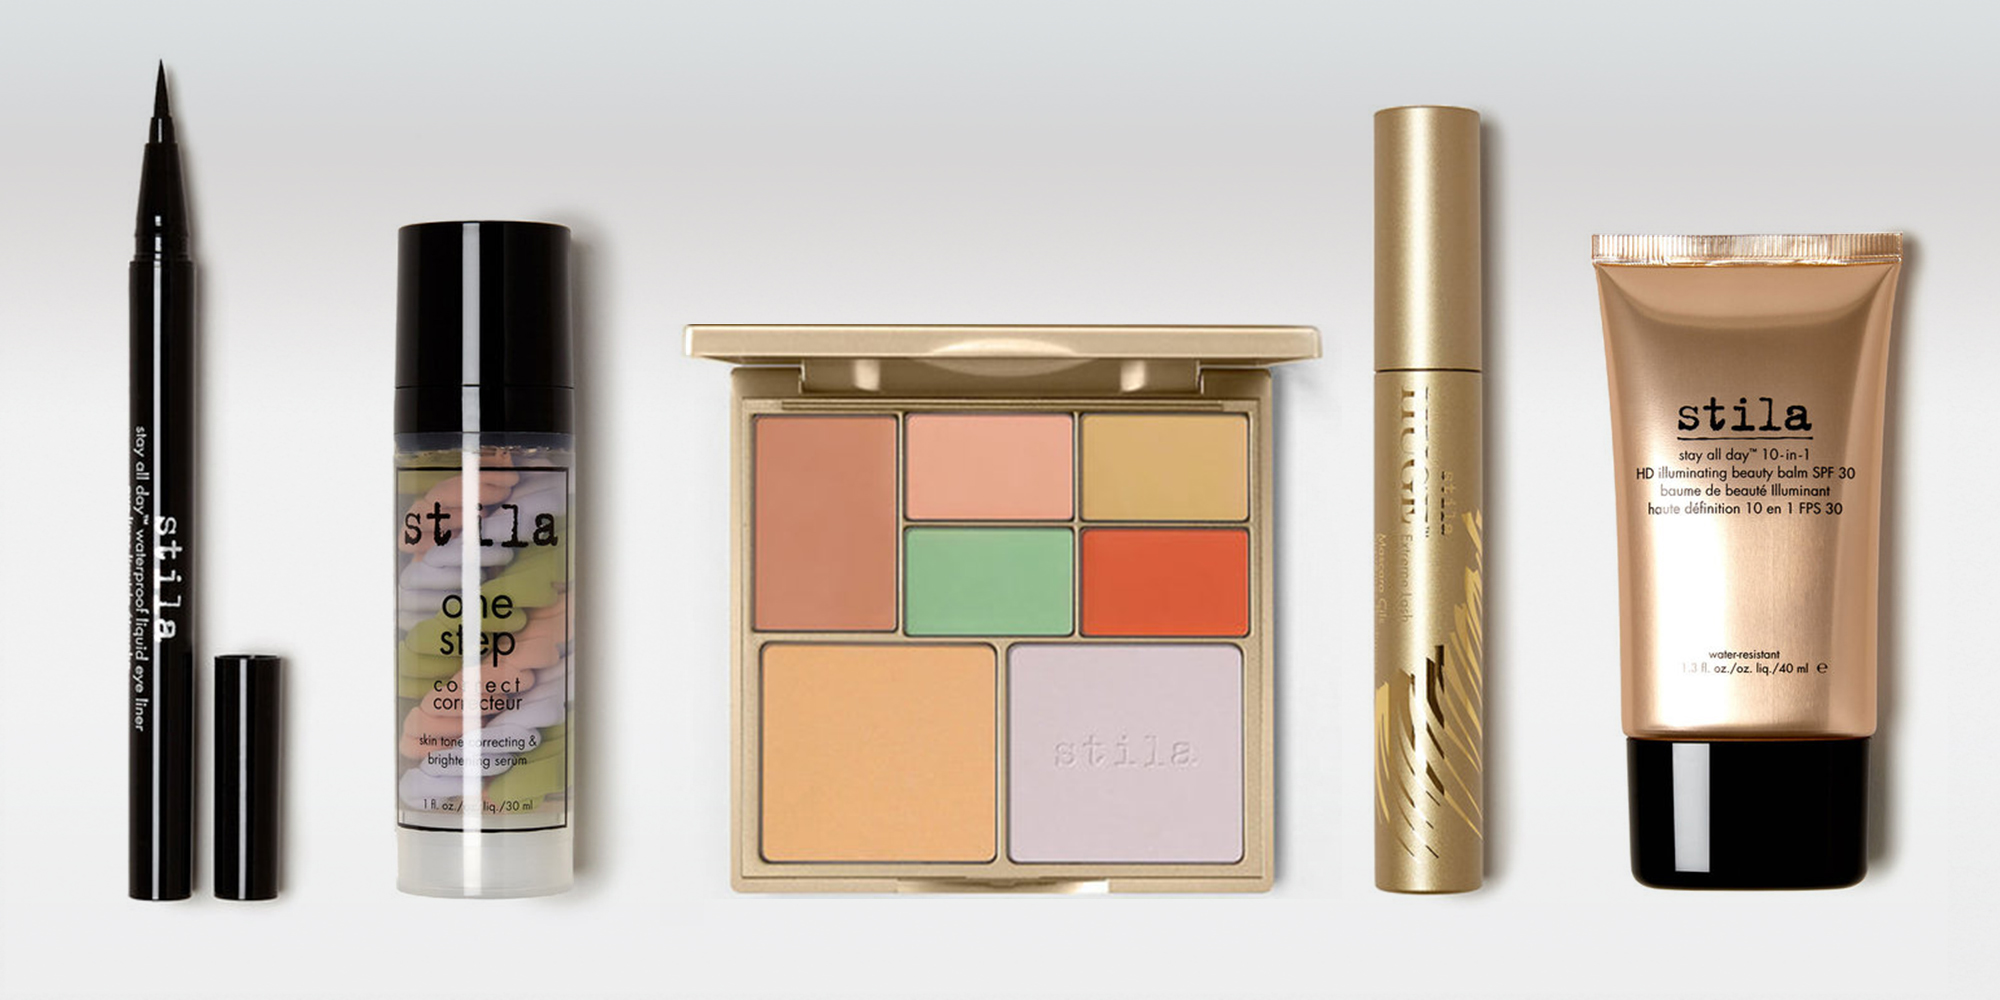 9 Best Stila Cosmetics Products in 2018 - Stila Makeup and